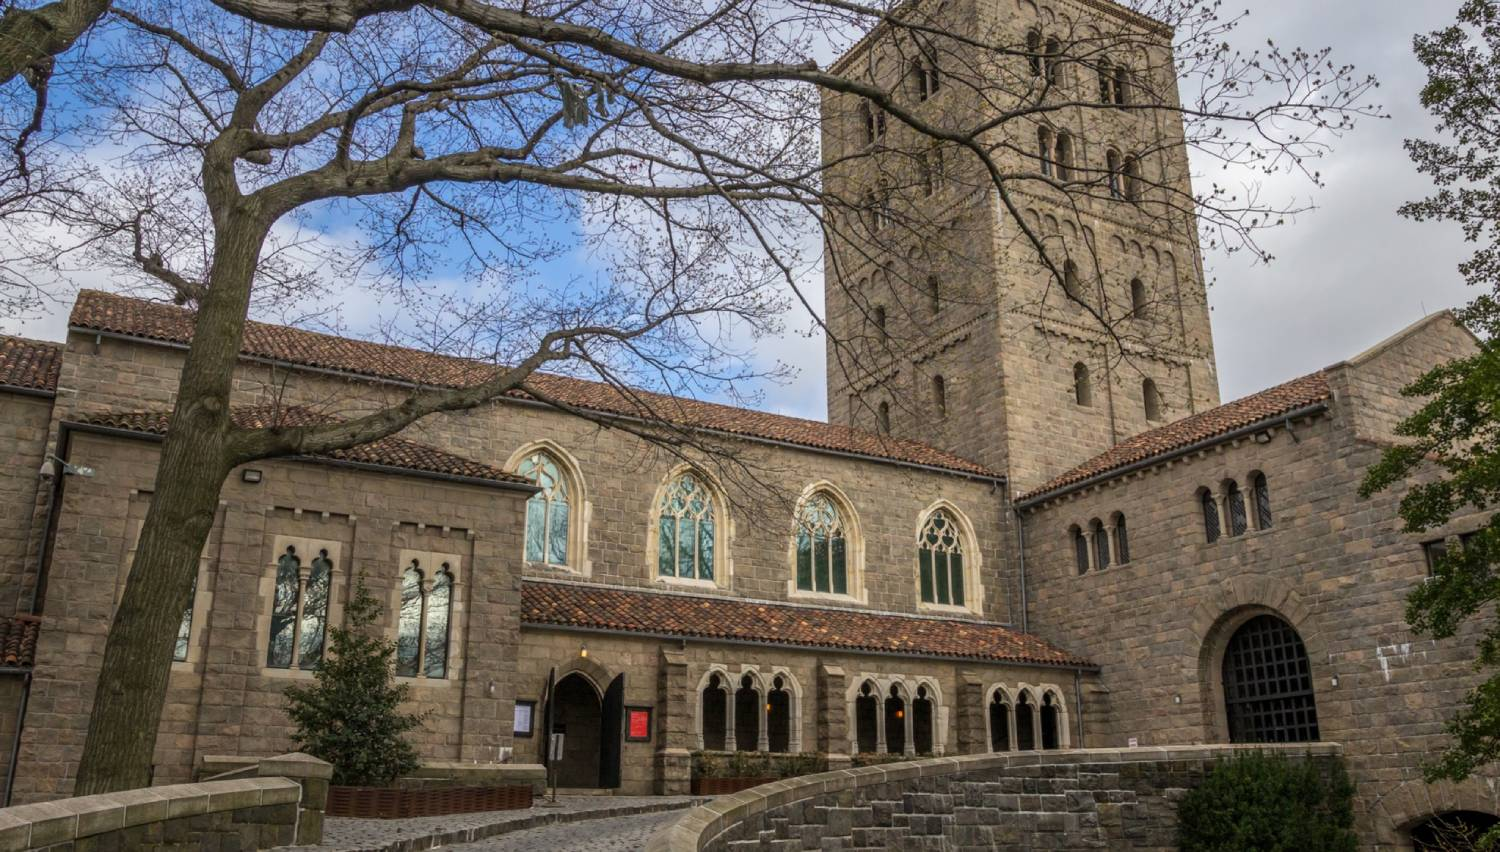 The Cloisters - Things To Do In New York City